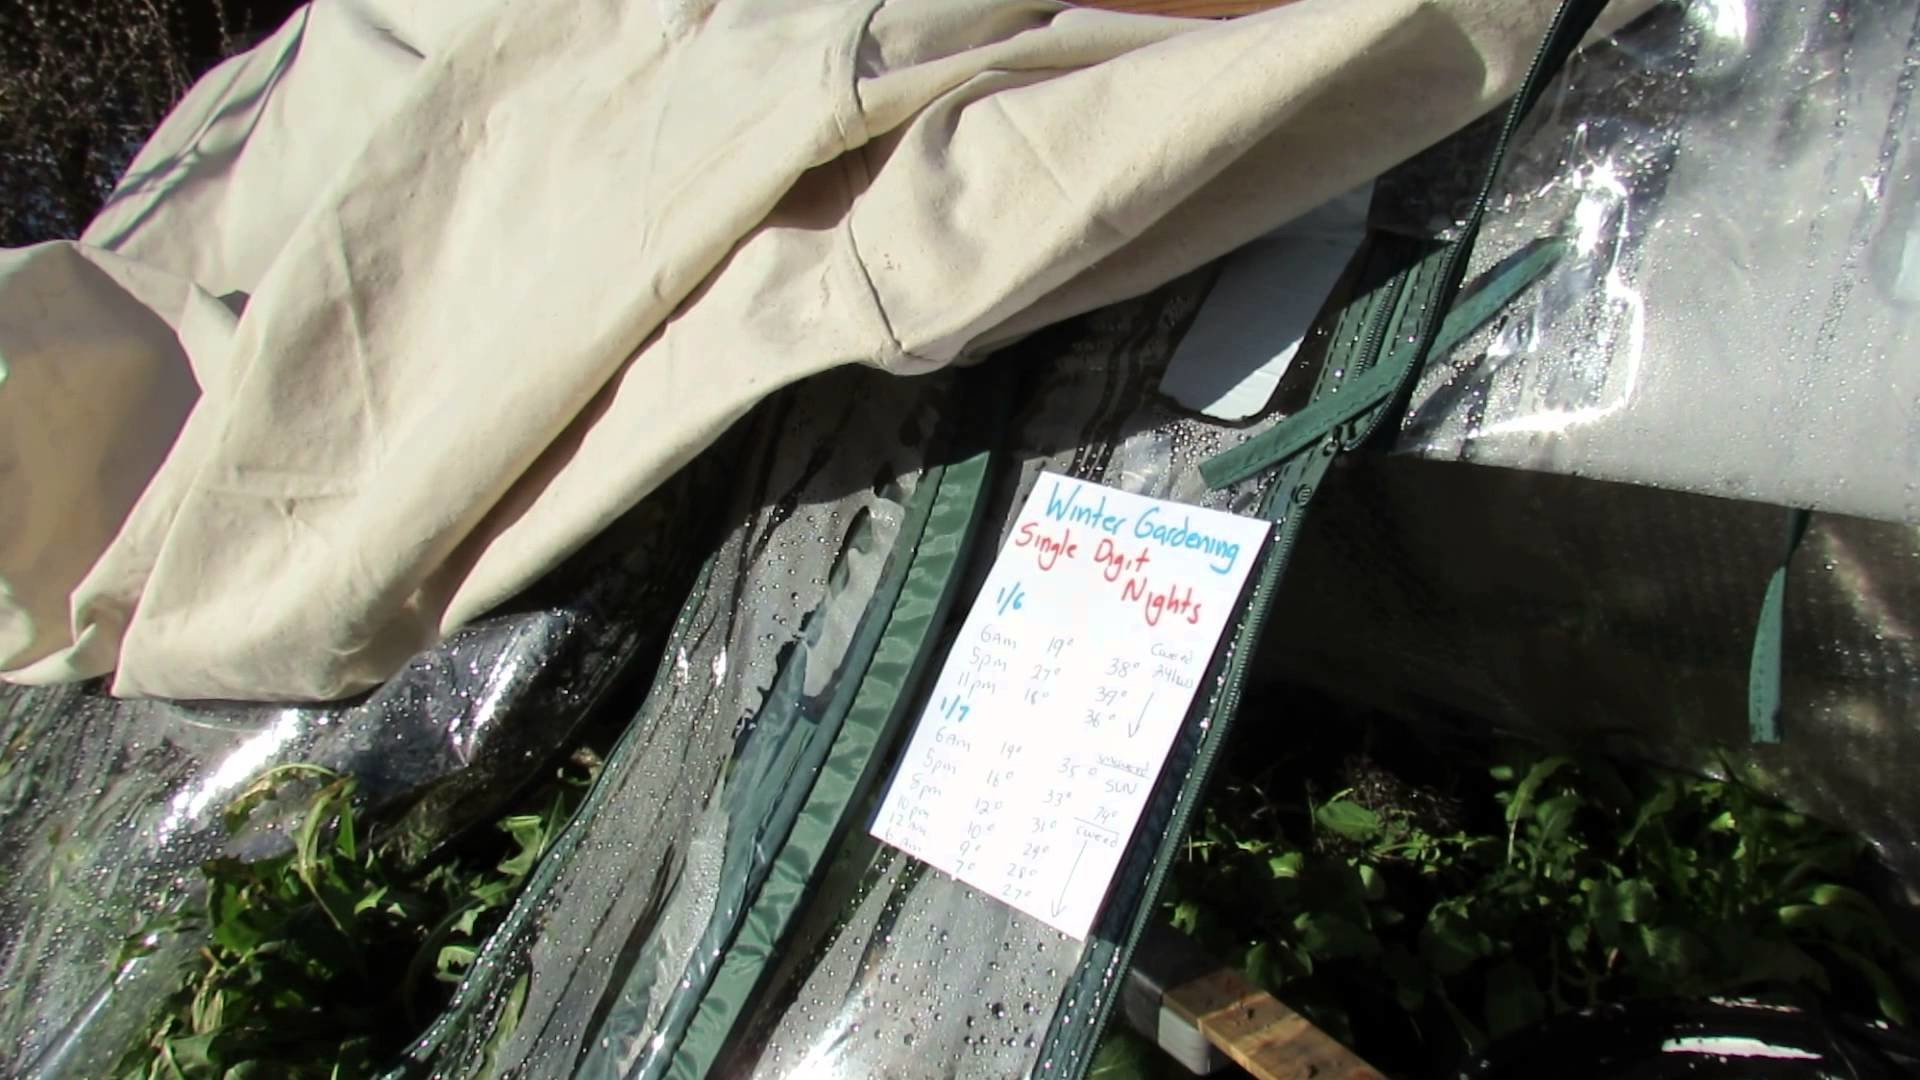 Covering a Pop-Up Greenhouse with Painter's Canvas.Blanket: An 8-10 Degree Difference - TRG 2015